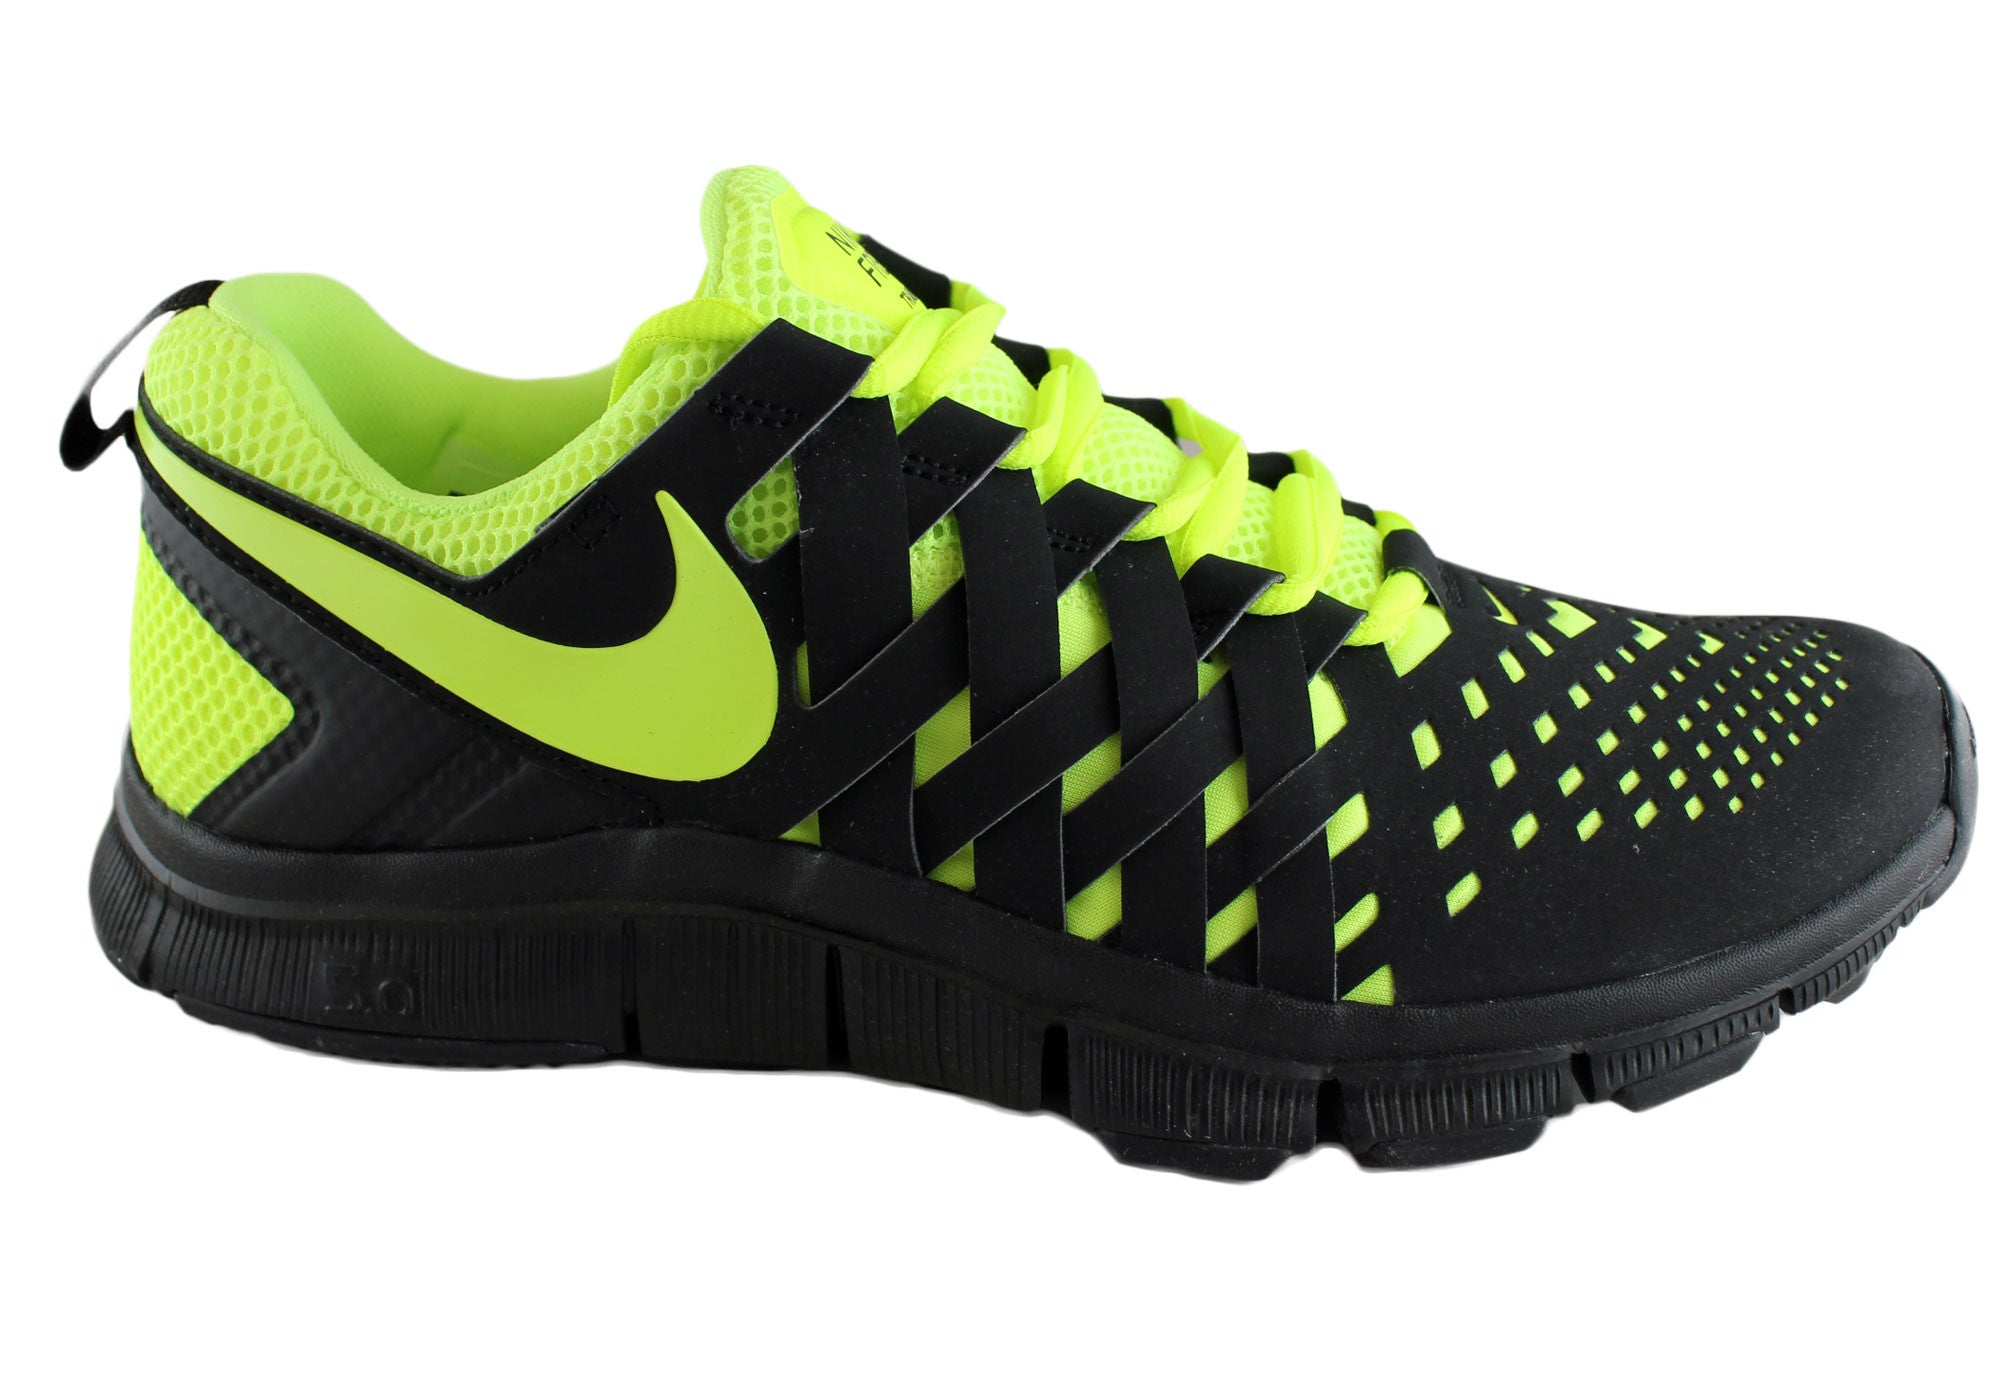 low priced c45be 1d68a Details about NEW NIKE FREE TRAINER 5.0 MENS LIGHTWEIGHT CUSHIONED RUNNING  SPORT SHOES